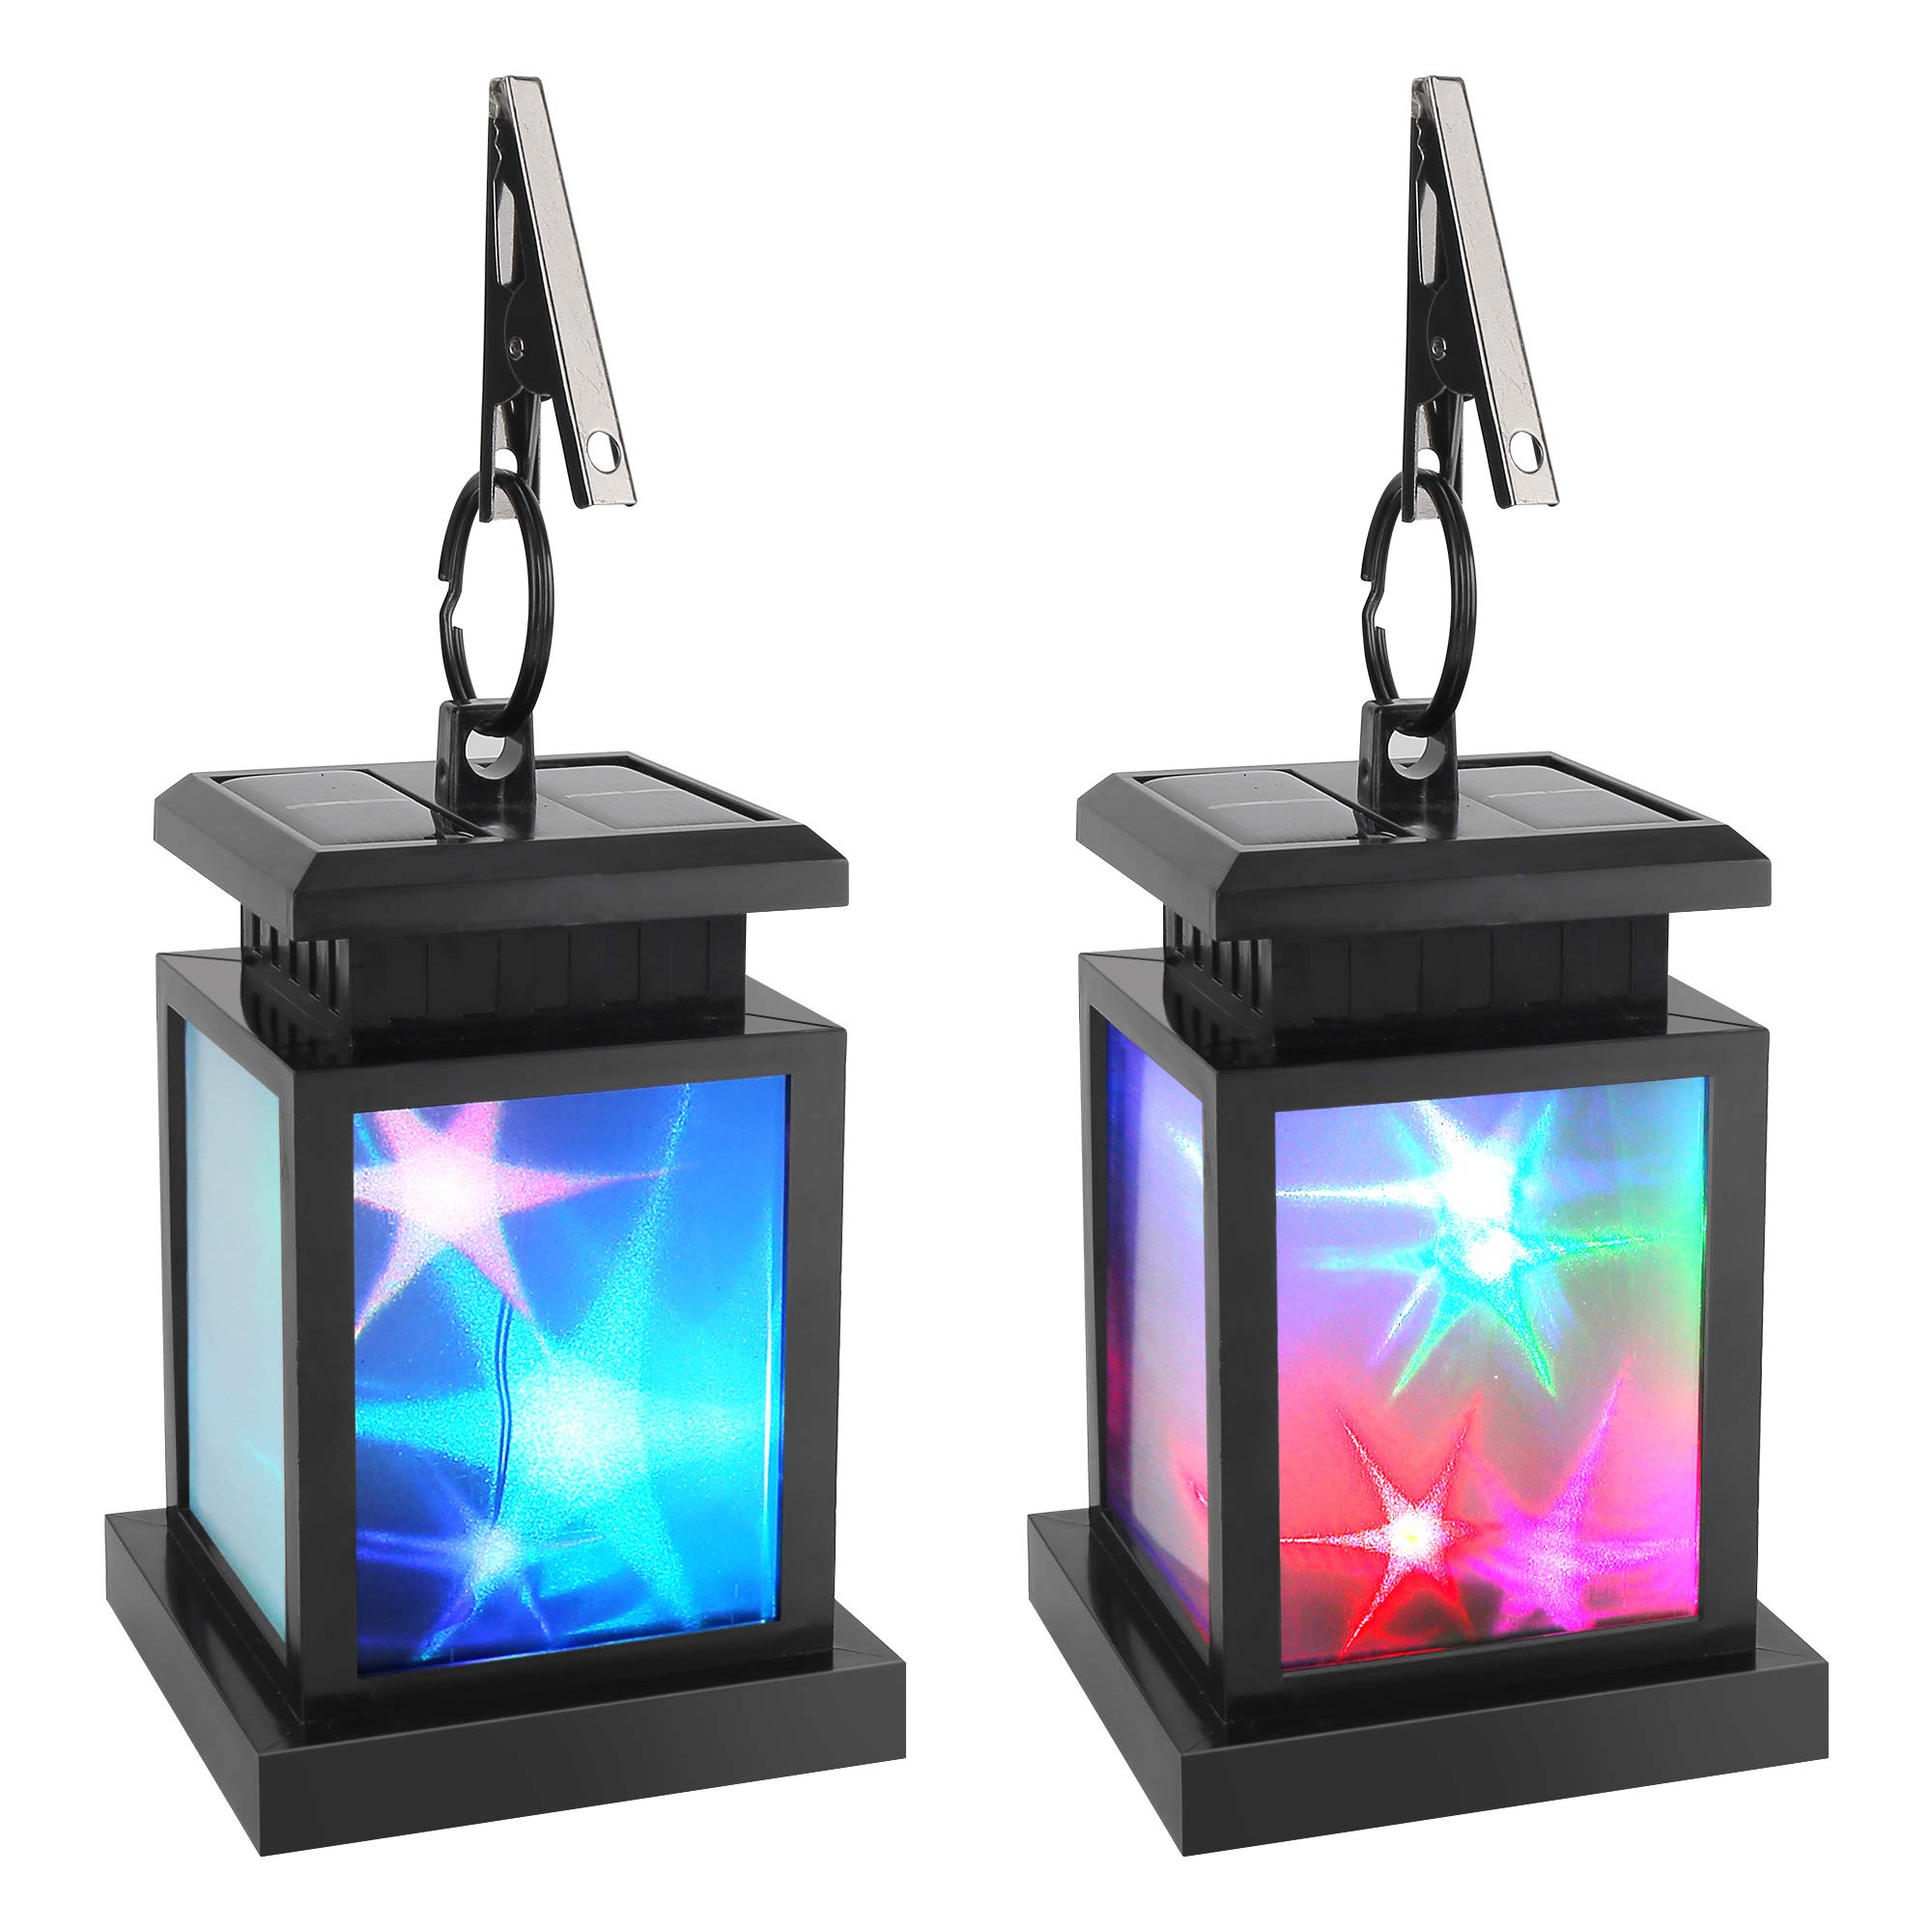 Solar Lantern Hanging, Derlights Color Changing Solar Star Flicker Lantern with Clamp, Auto On/Off solar garden lights for Outdoor Patio Lawn Yard Pavilion Beach Umbrella Tree Decoration (2 Pack)